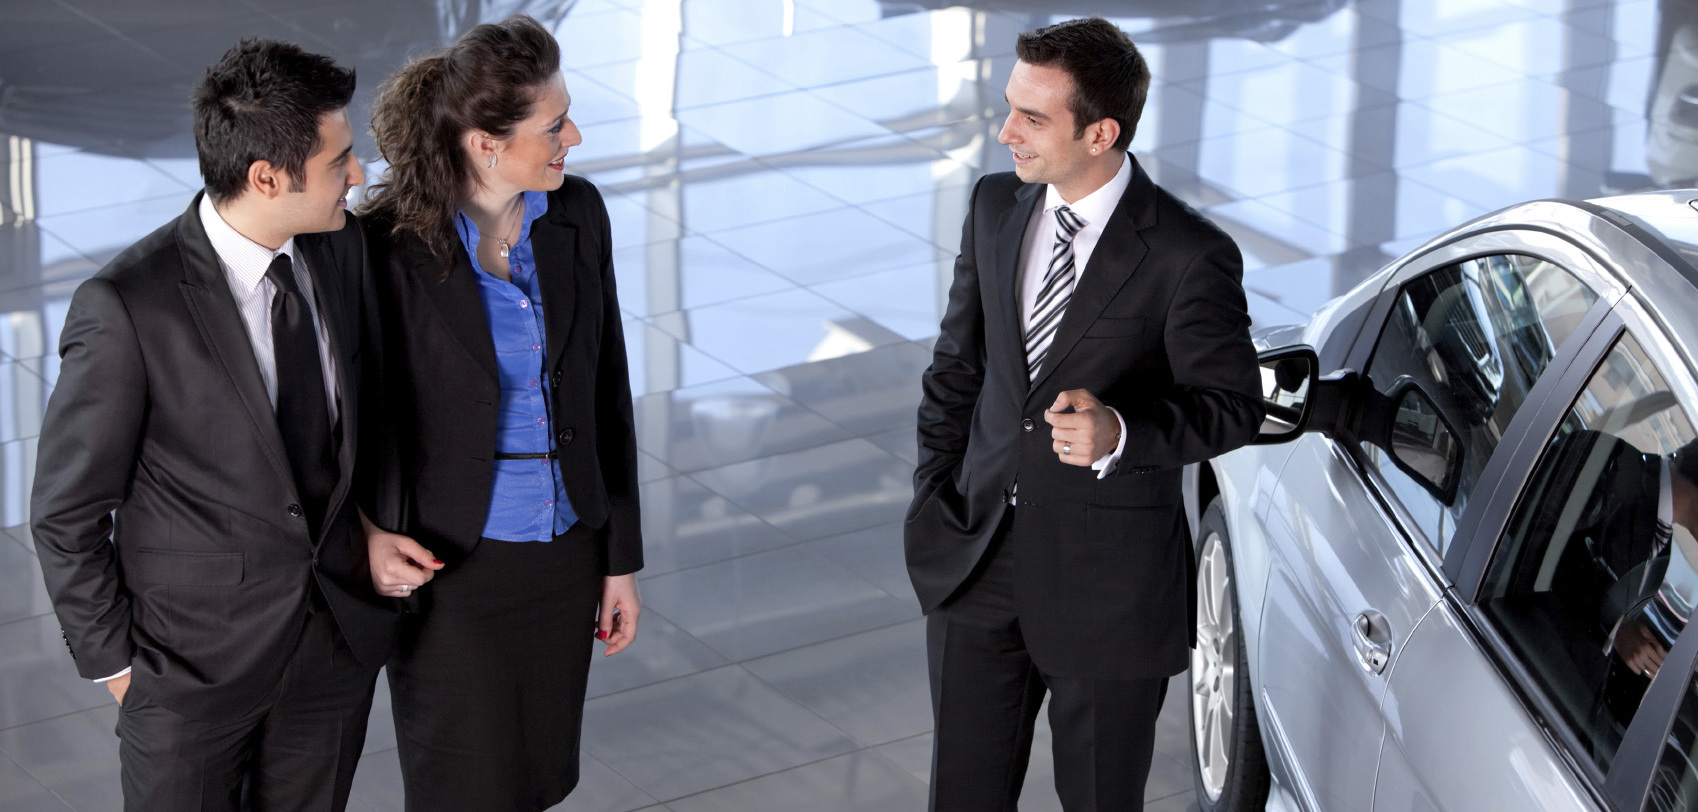 Talk With our Sales Staff About a Used Vehicle Today!